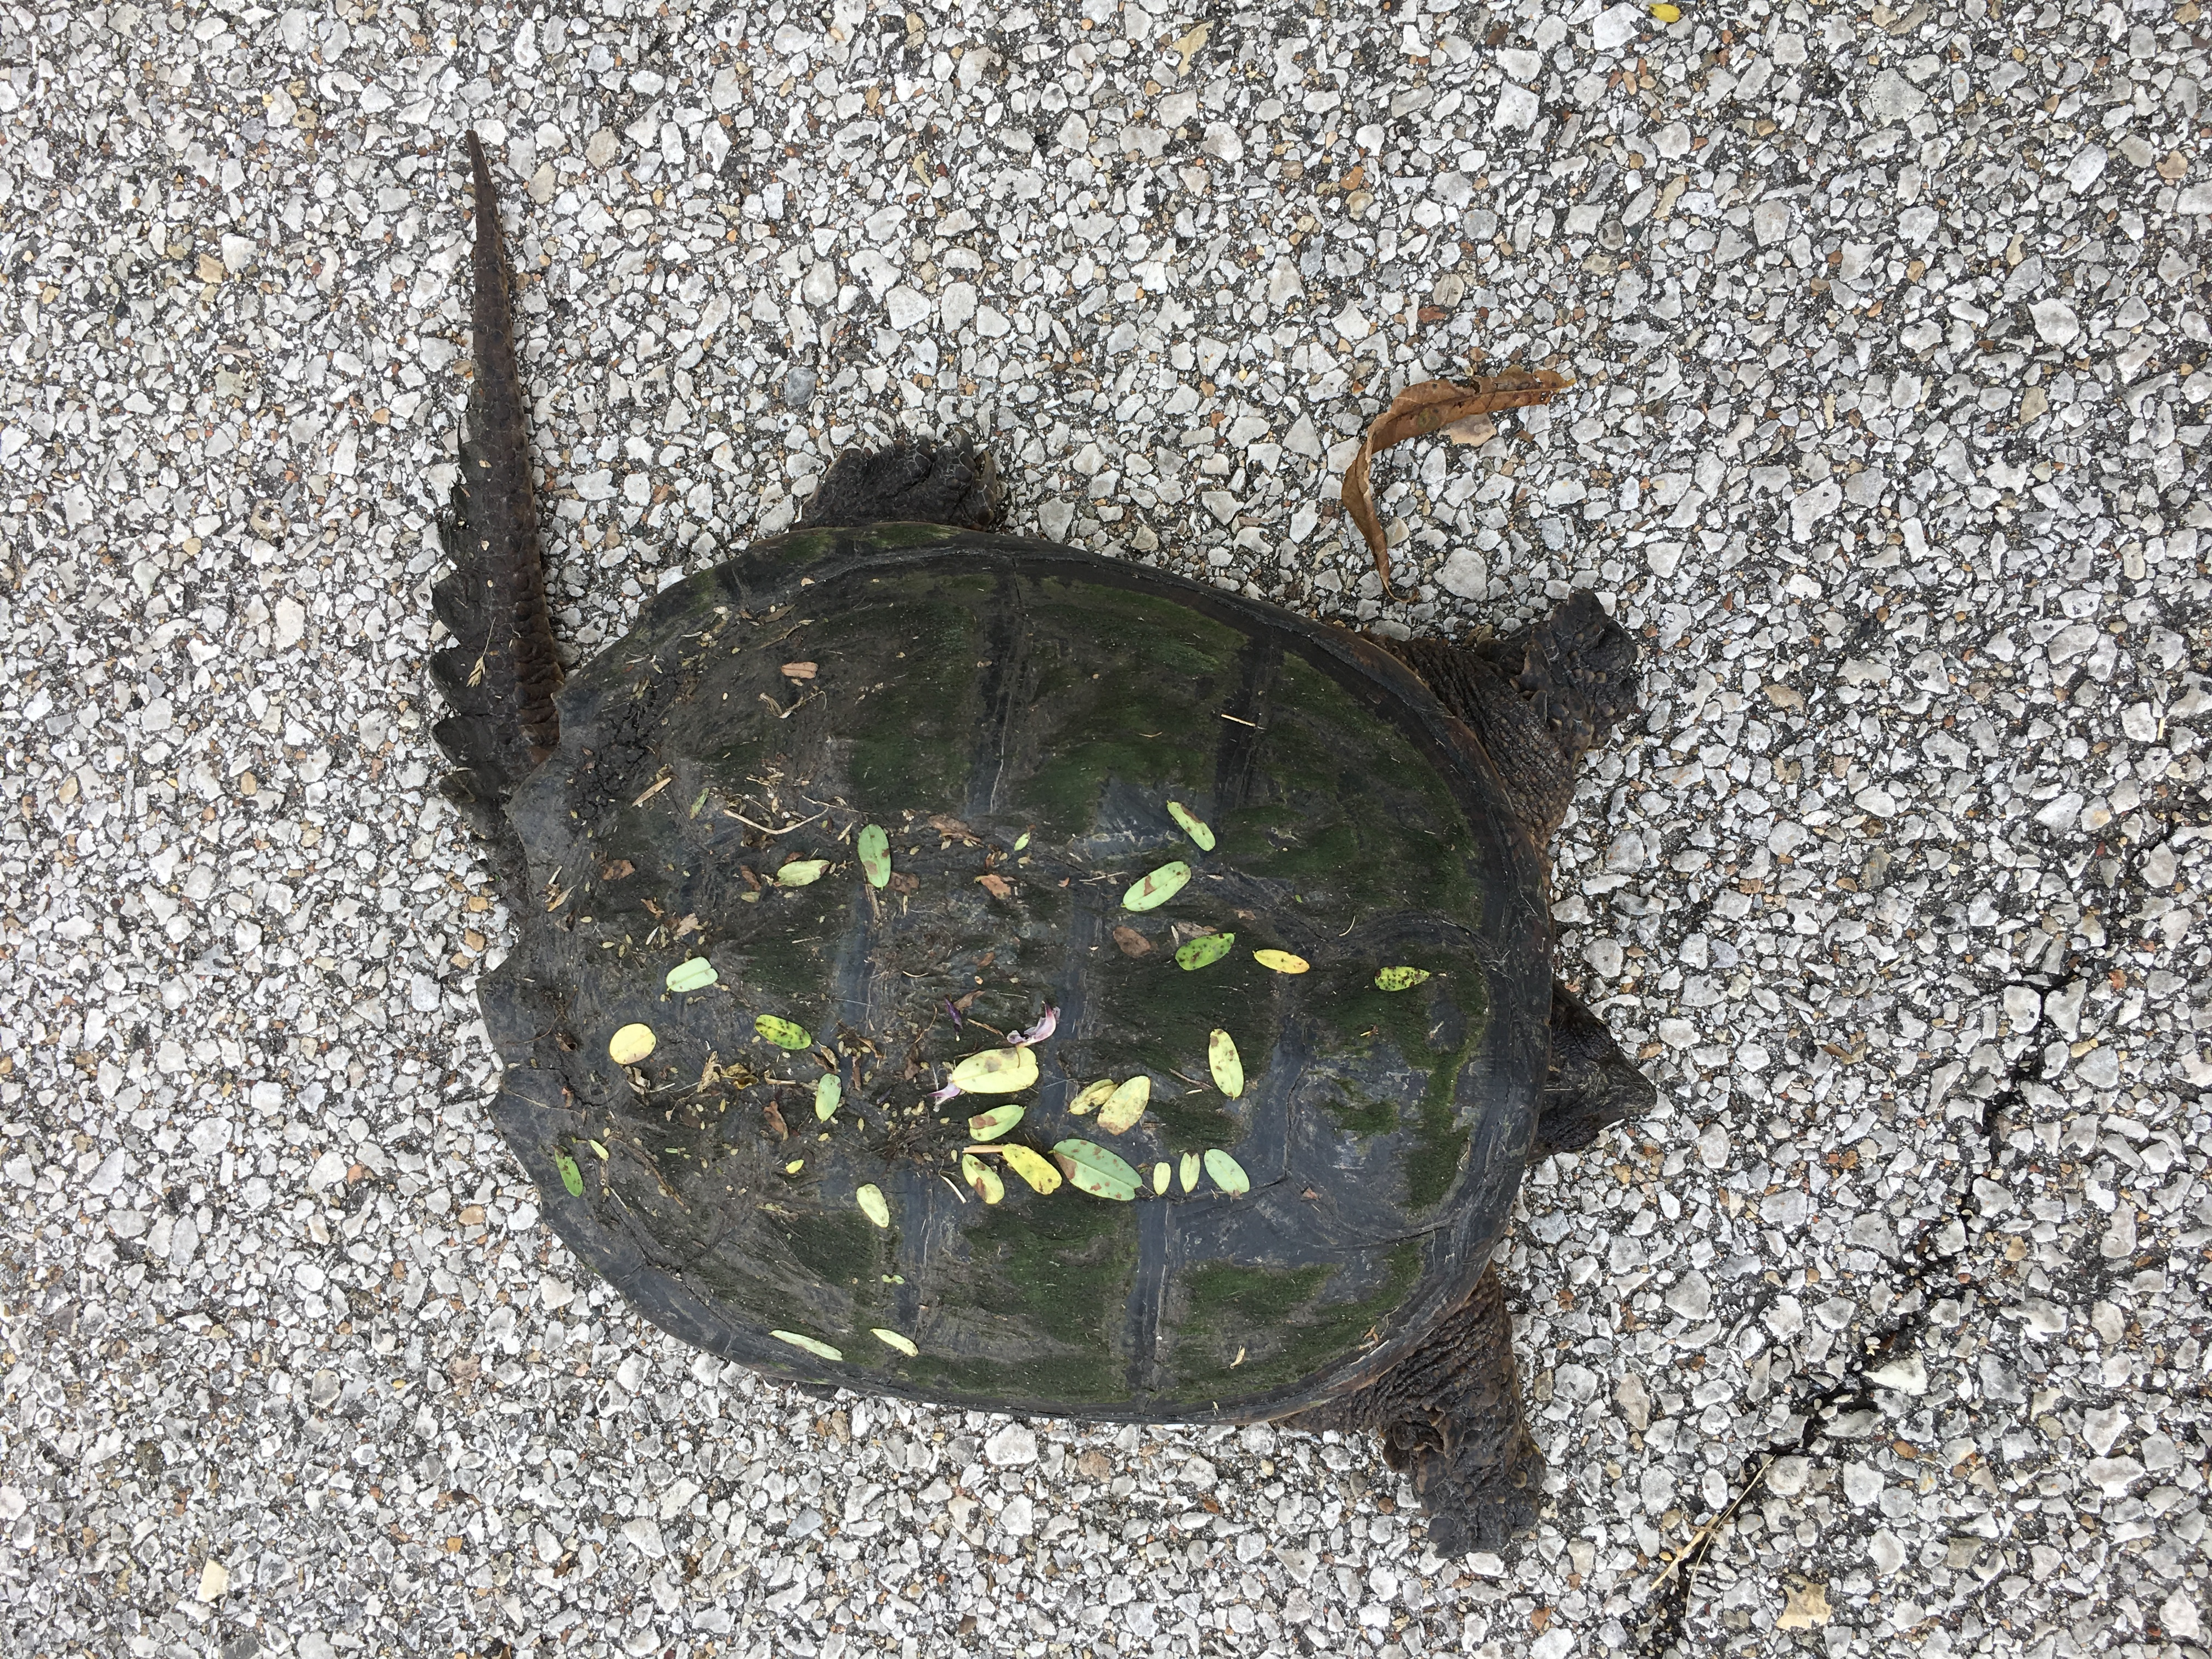 snapping turtle, animal, reptile, turtle, nature, wildlife